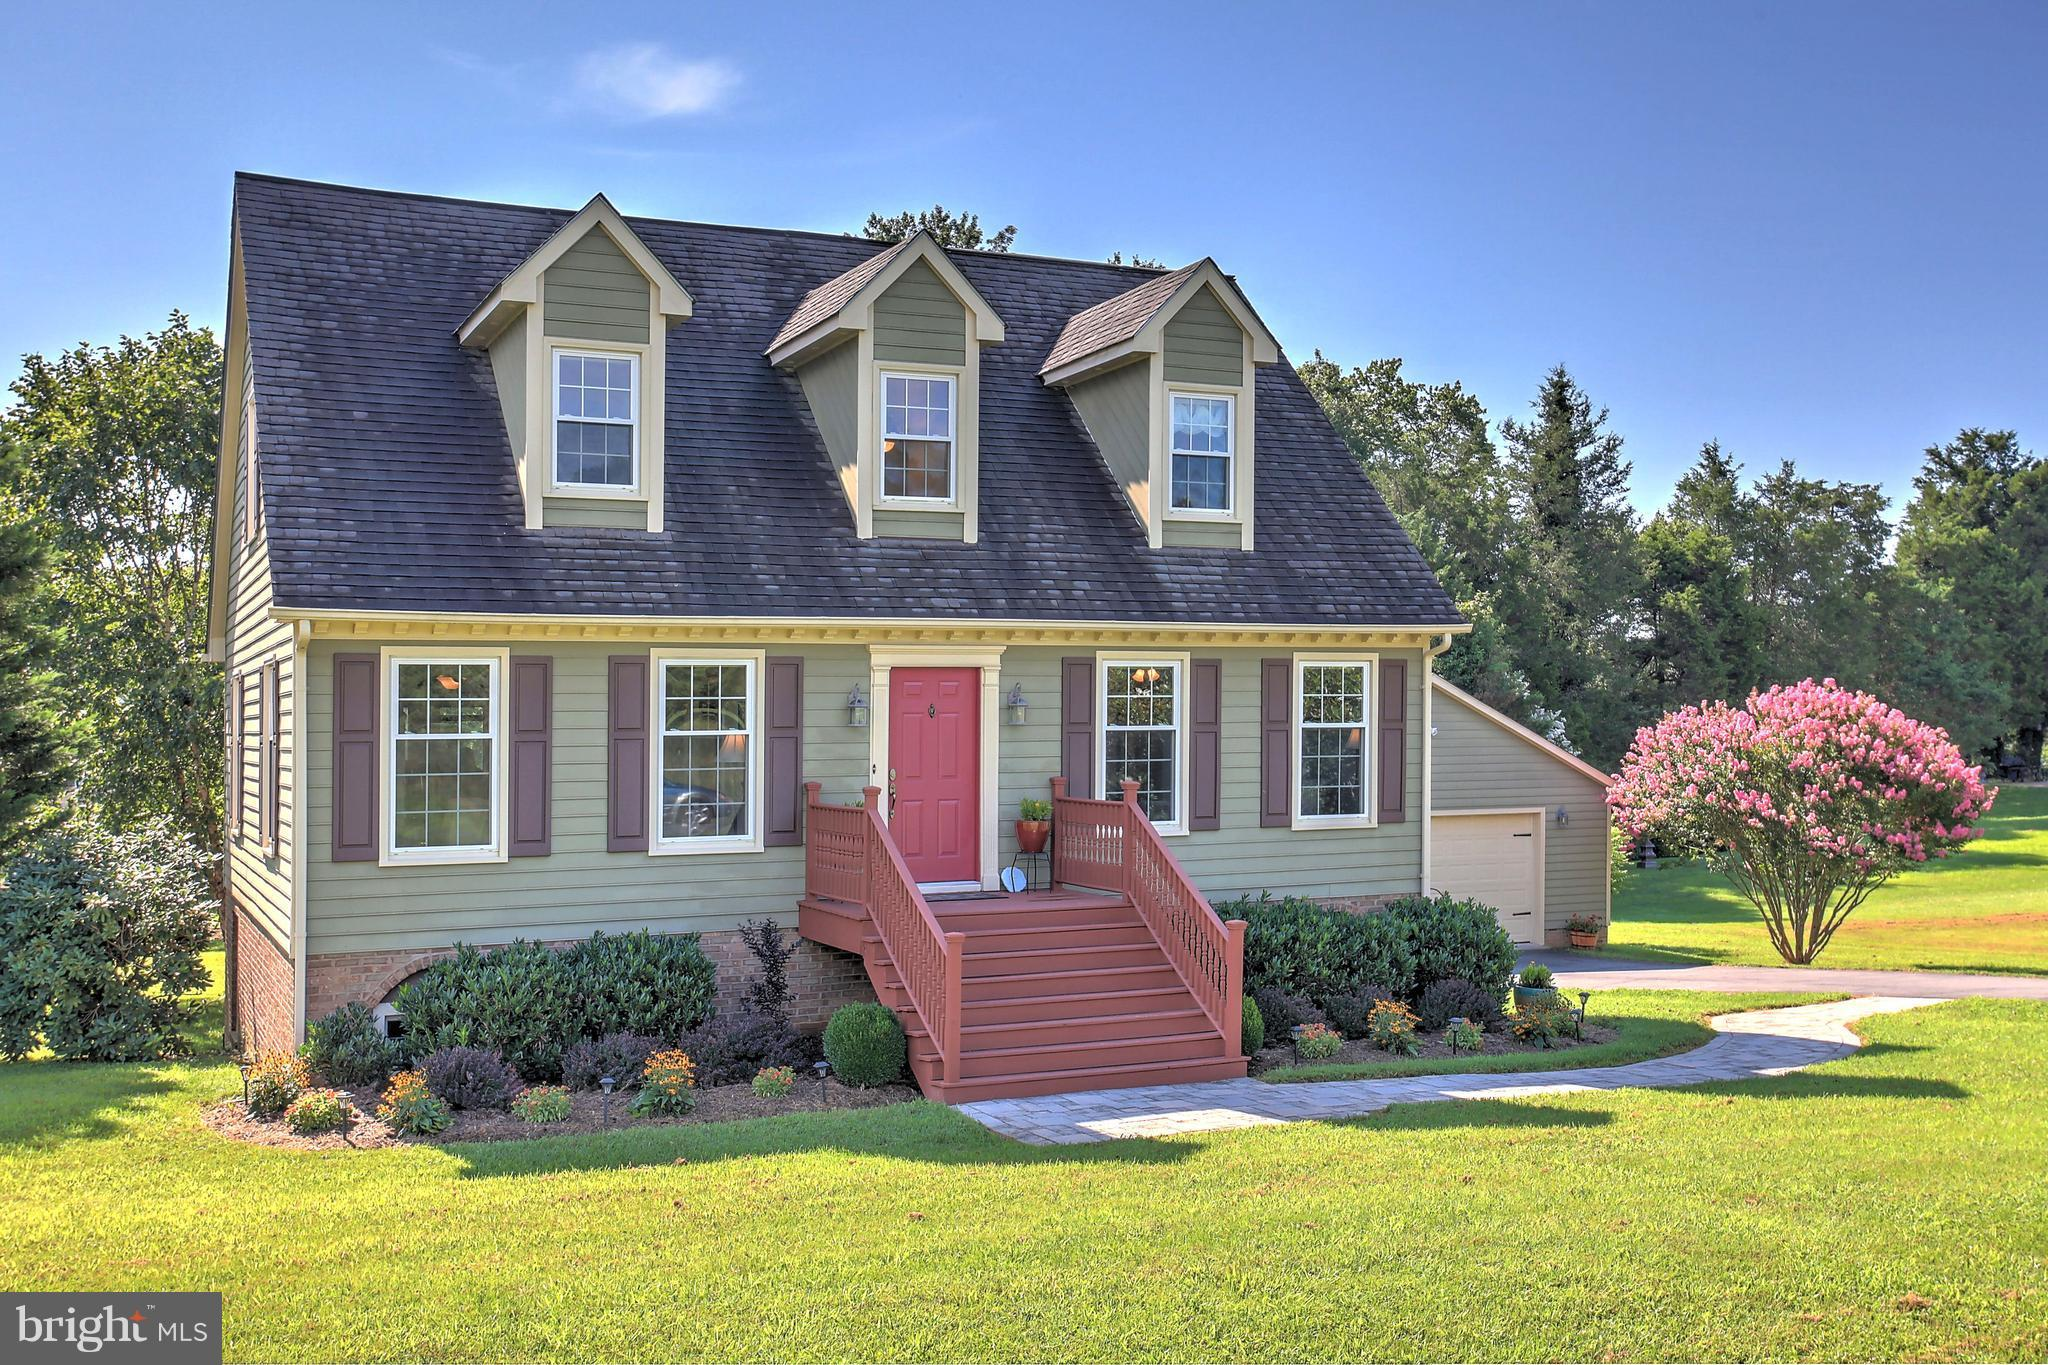 104 WOODGER CIRCLE, Louisa, VA 23093